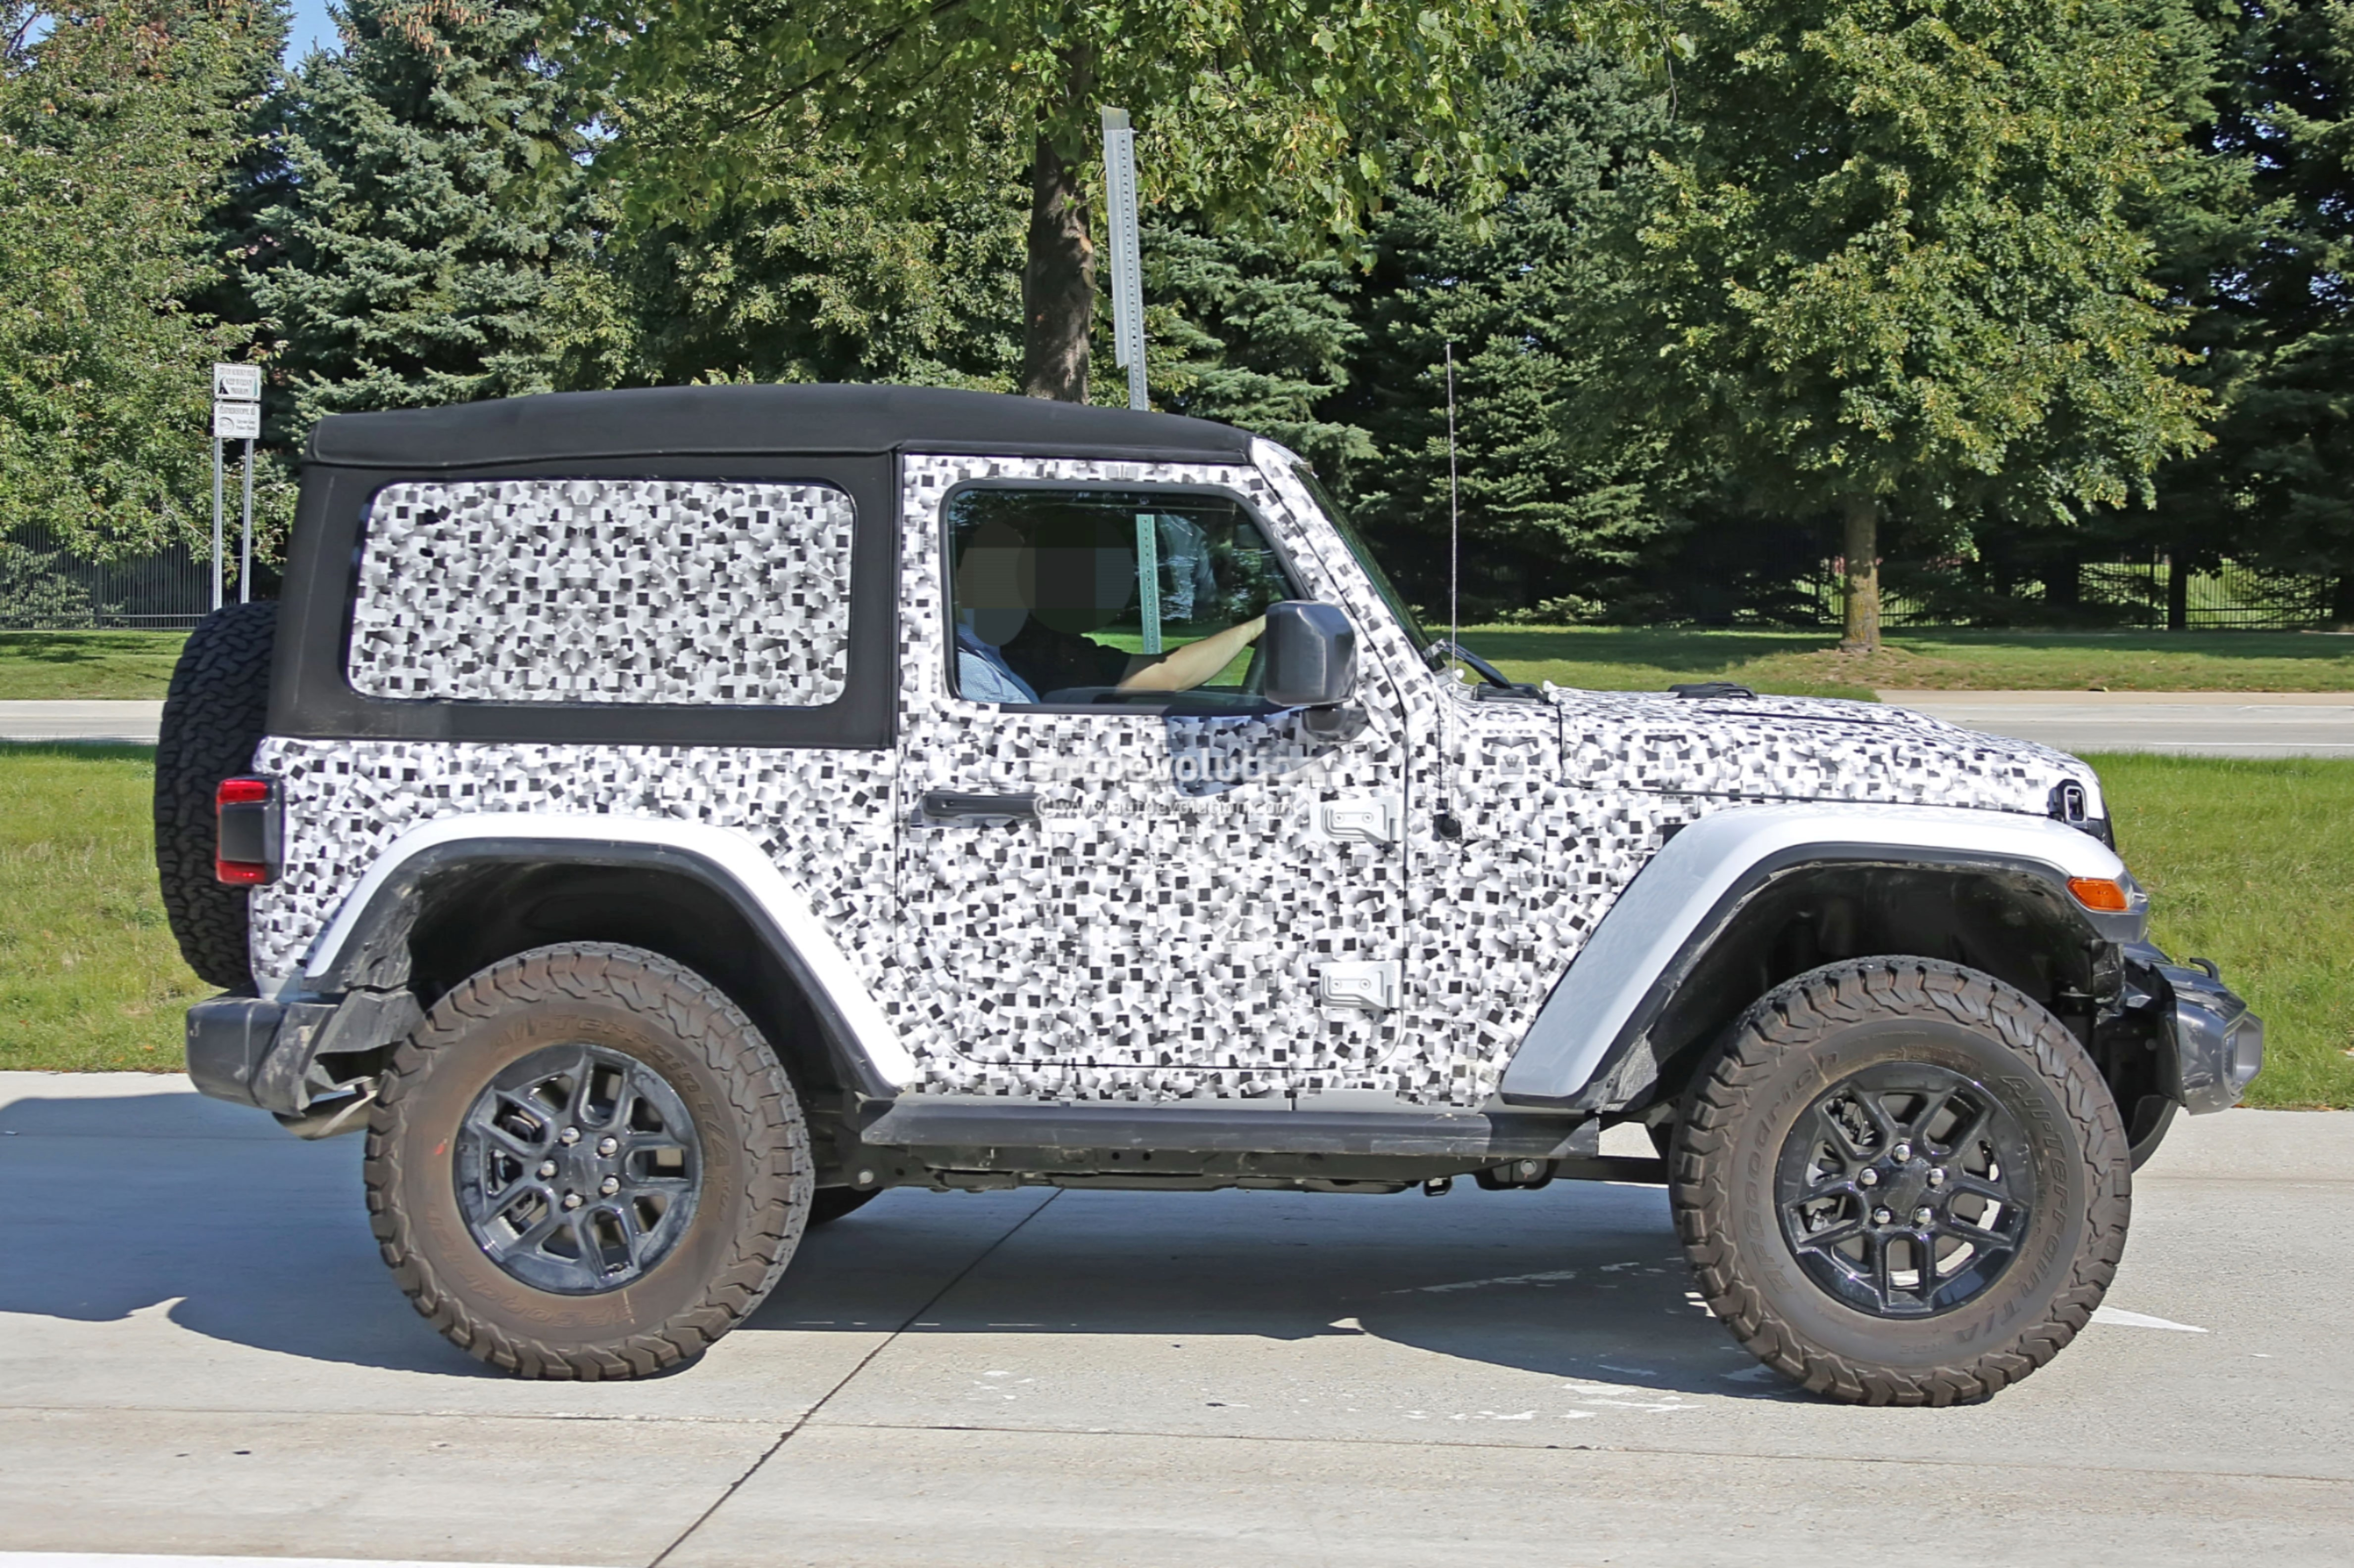 2018 - [Jeep] Wrangler - Page 3 2018-jeep-wrangler-jl-reveals-grille-and-headlights-in-newest-spy-photos_12